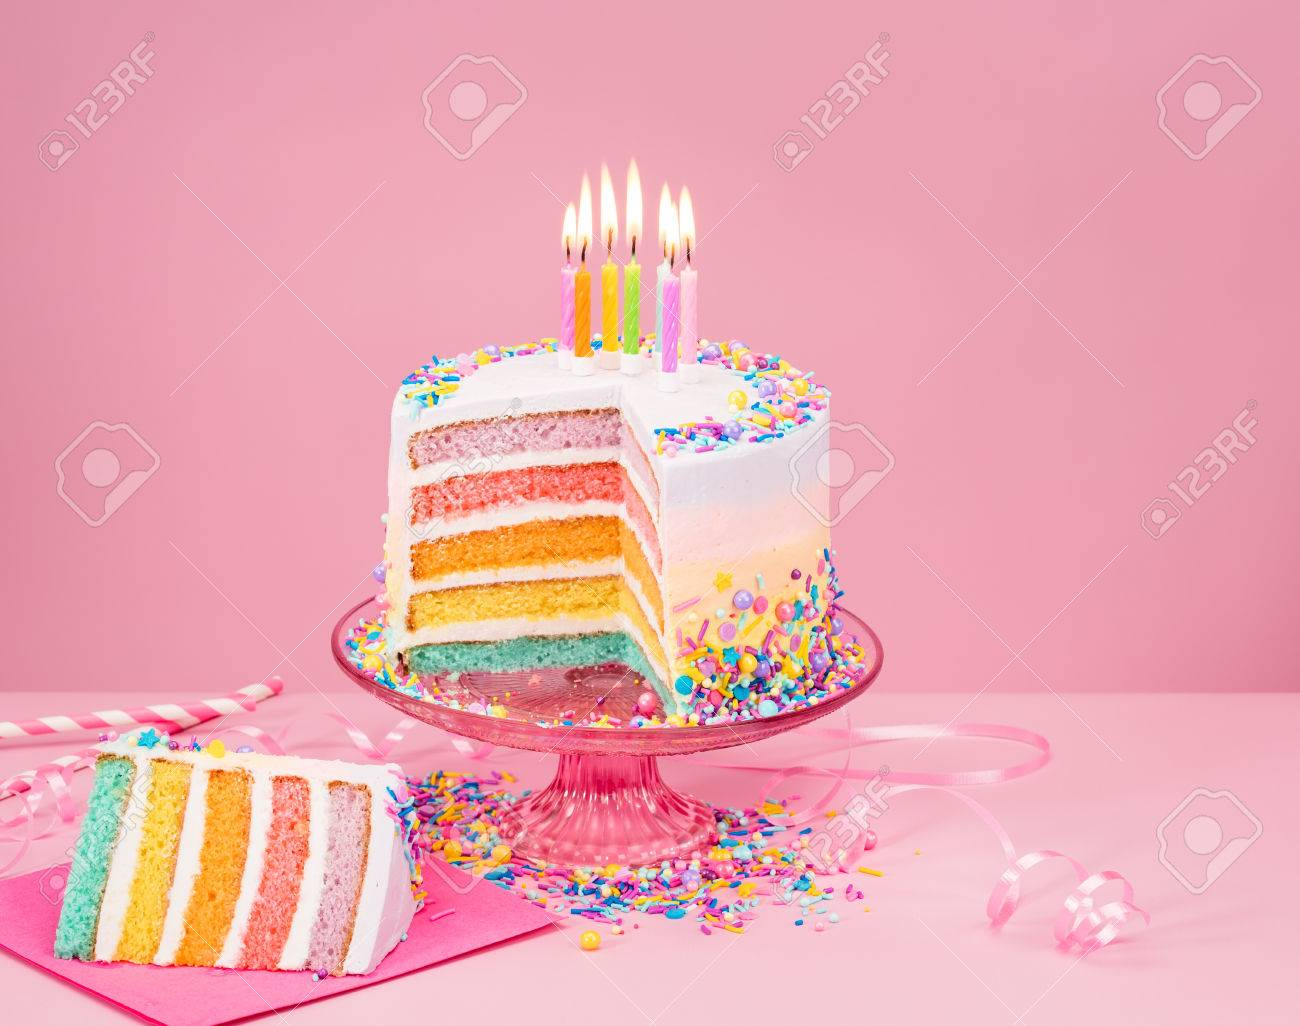 Colorful Rainbow Birthday Cake And With Candles Over A Pink Background Stock Photo